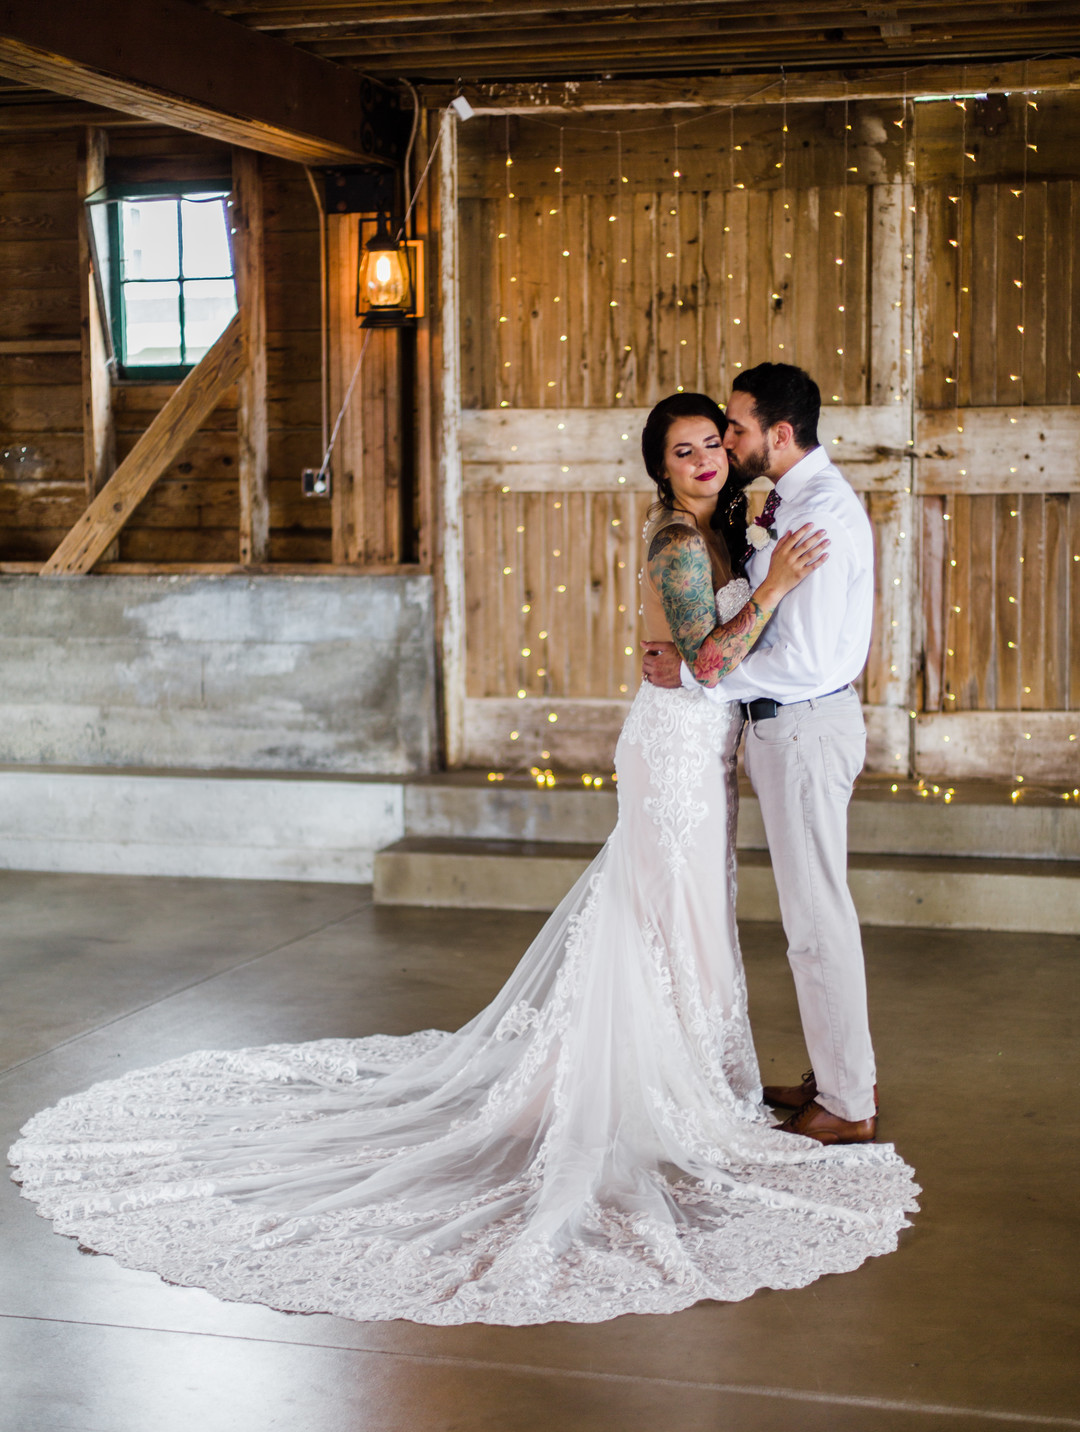 Rustic barn wedding inspiration captured by Grace Rios Photography. See more fall wedding ideas at CHItheeWED.com!